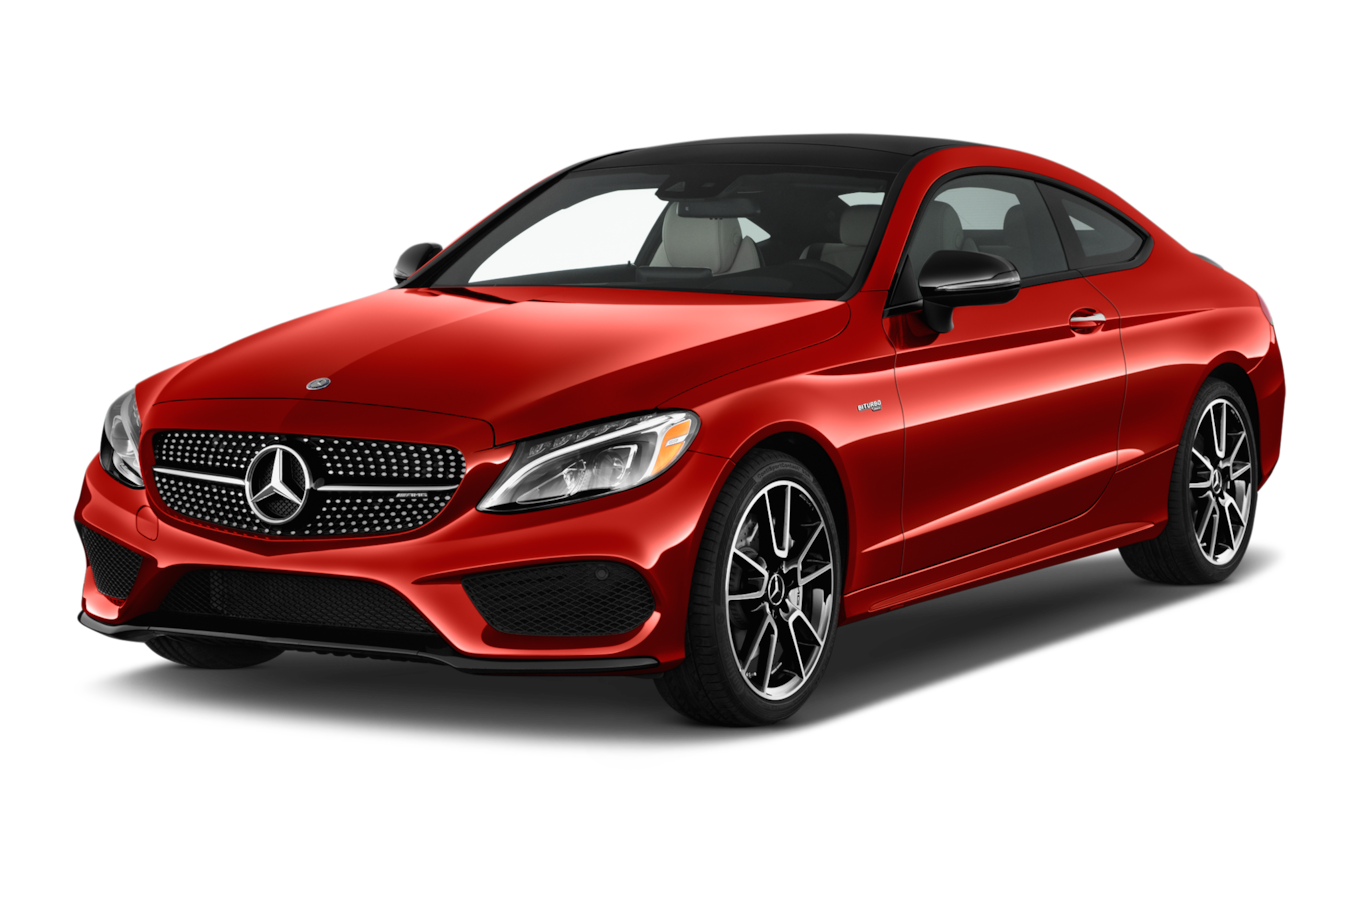 mercedes, luxury cars reviews prices ratings for luxury cars #26180